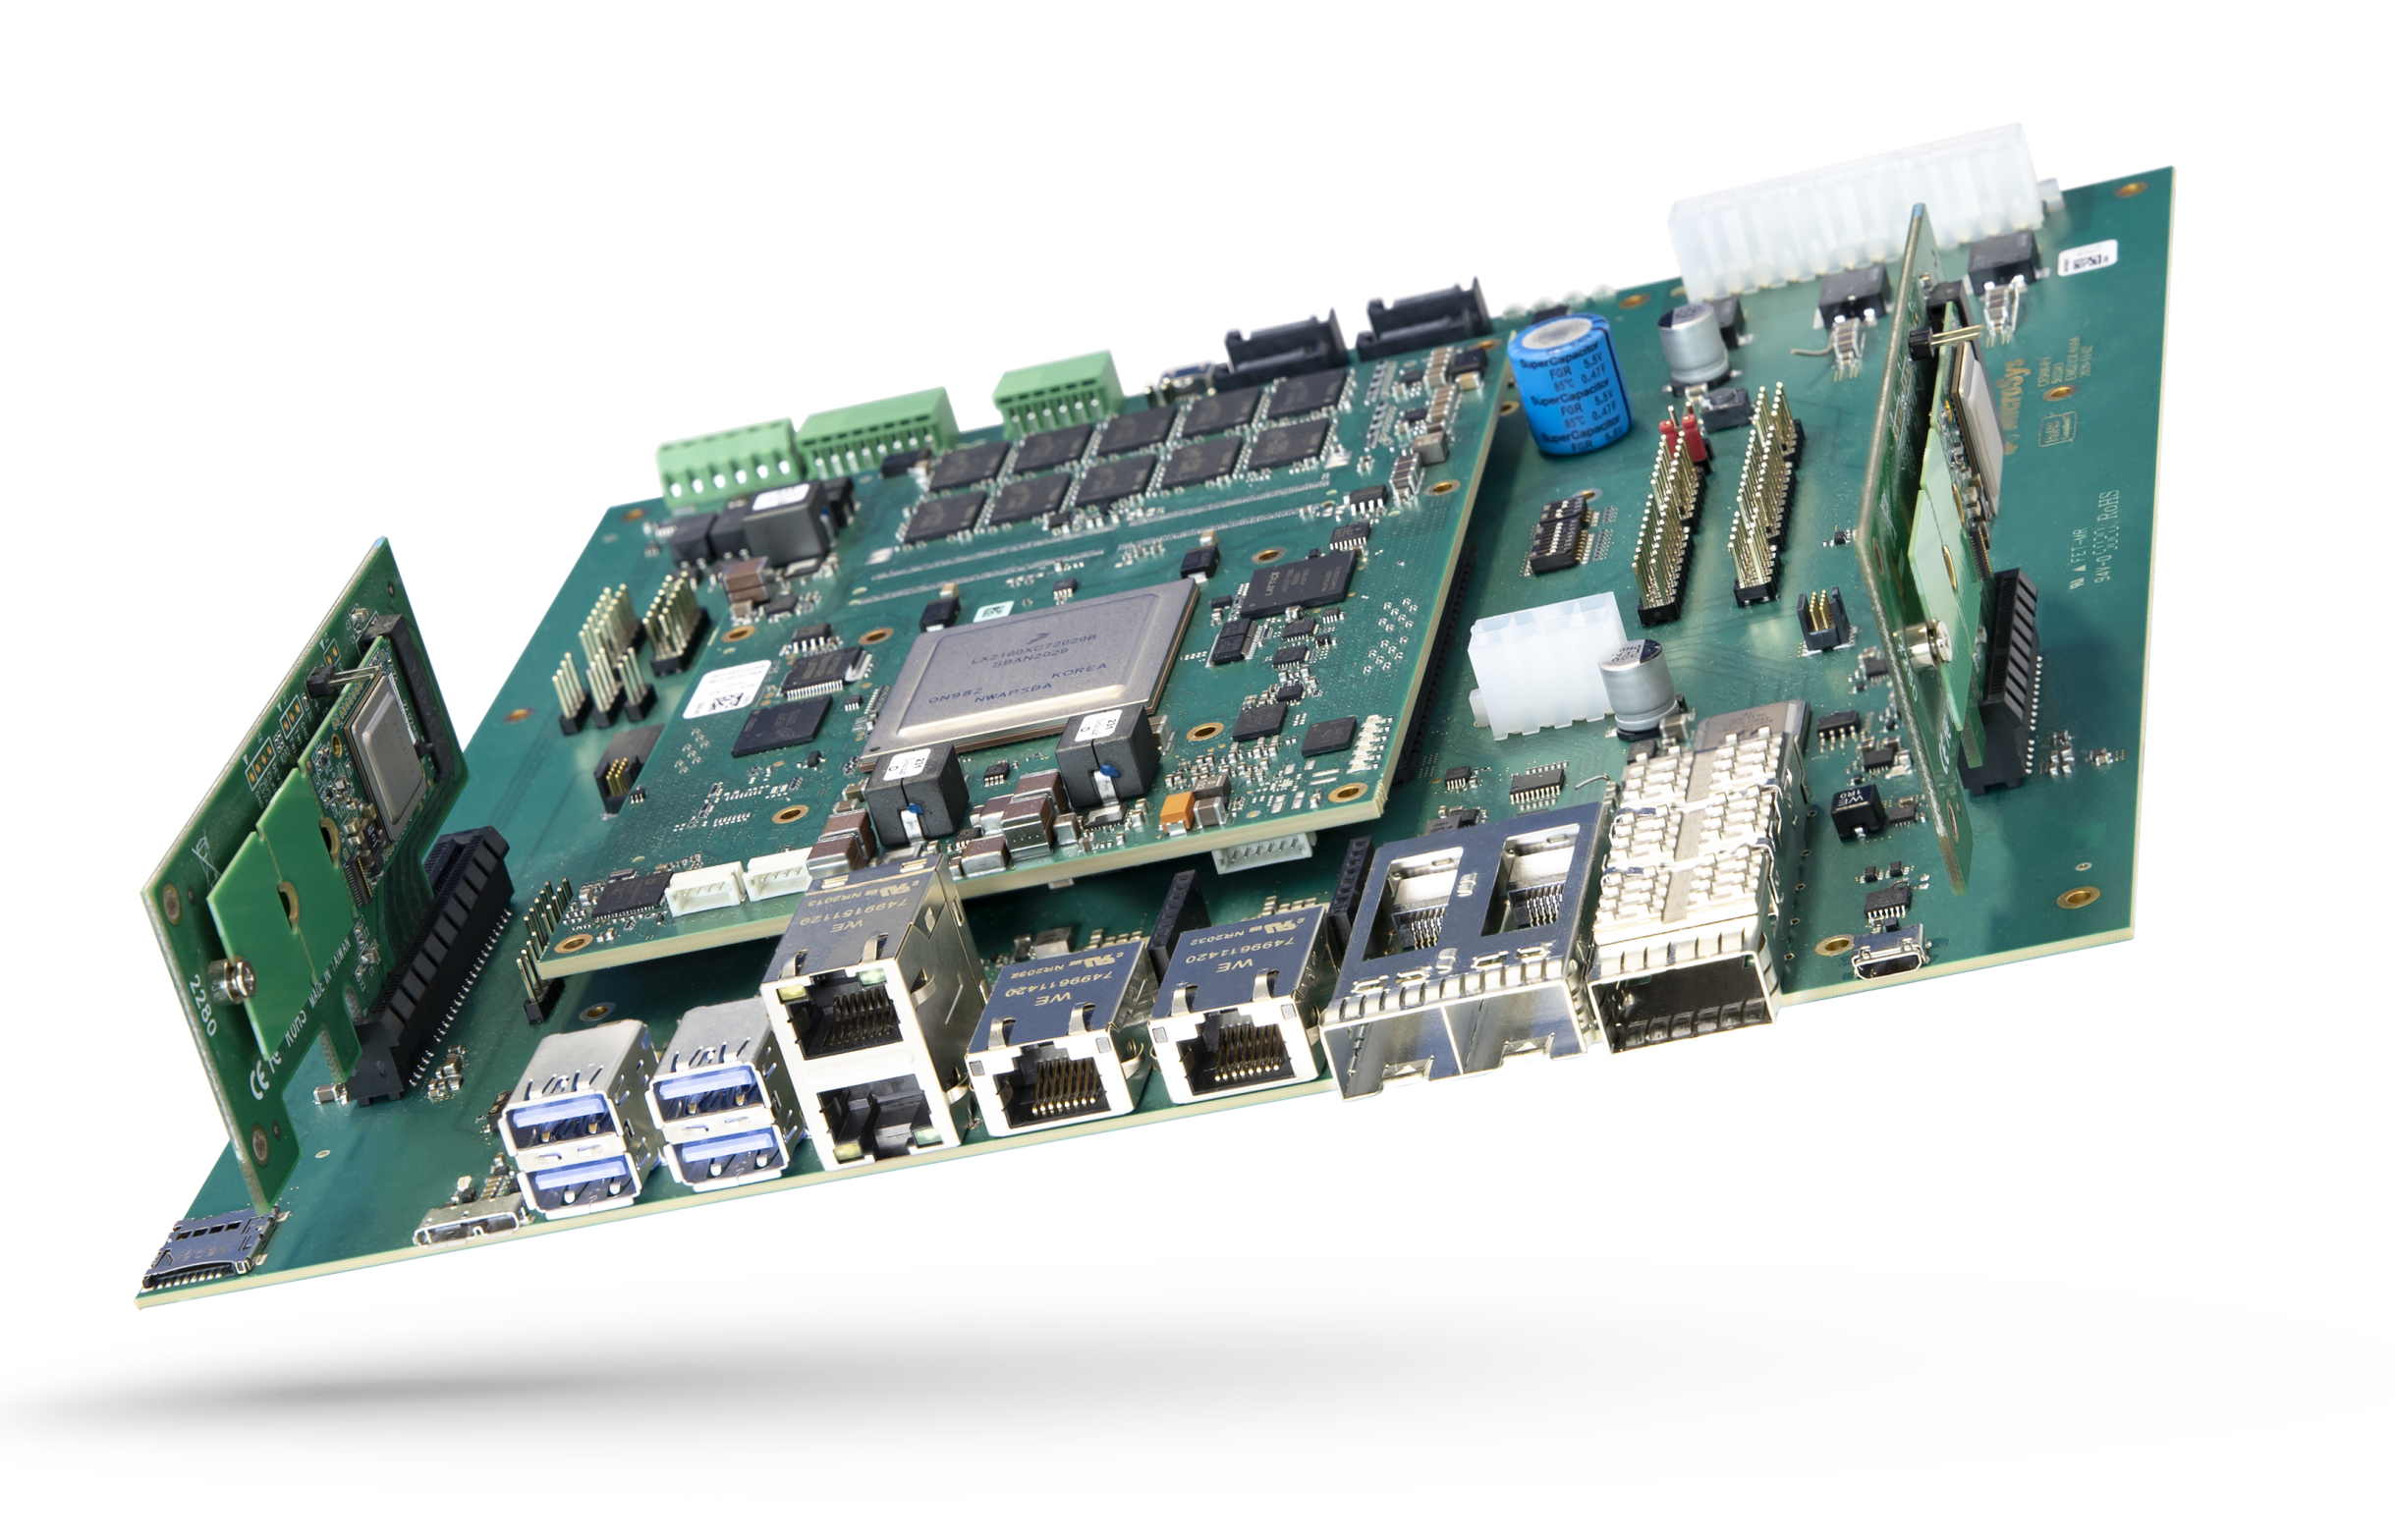 Embedded AI platform combines 16-core NXP Layerscape LX2160A processor with up to 5x Hailo-8 NPUs